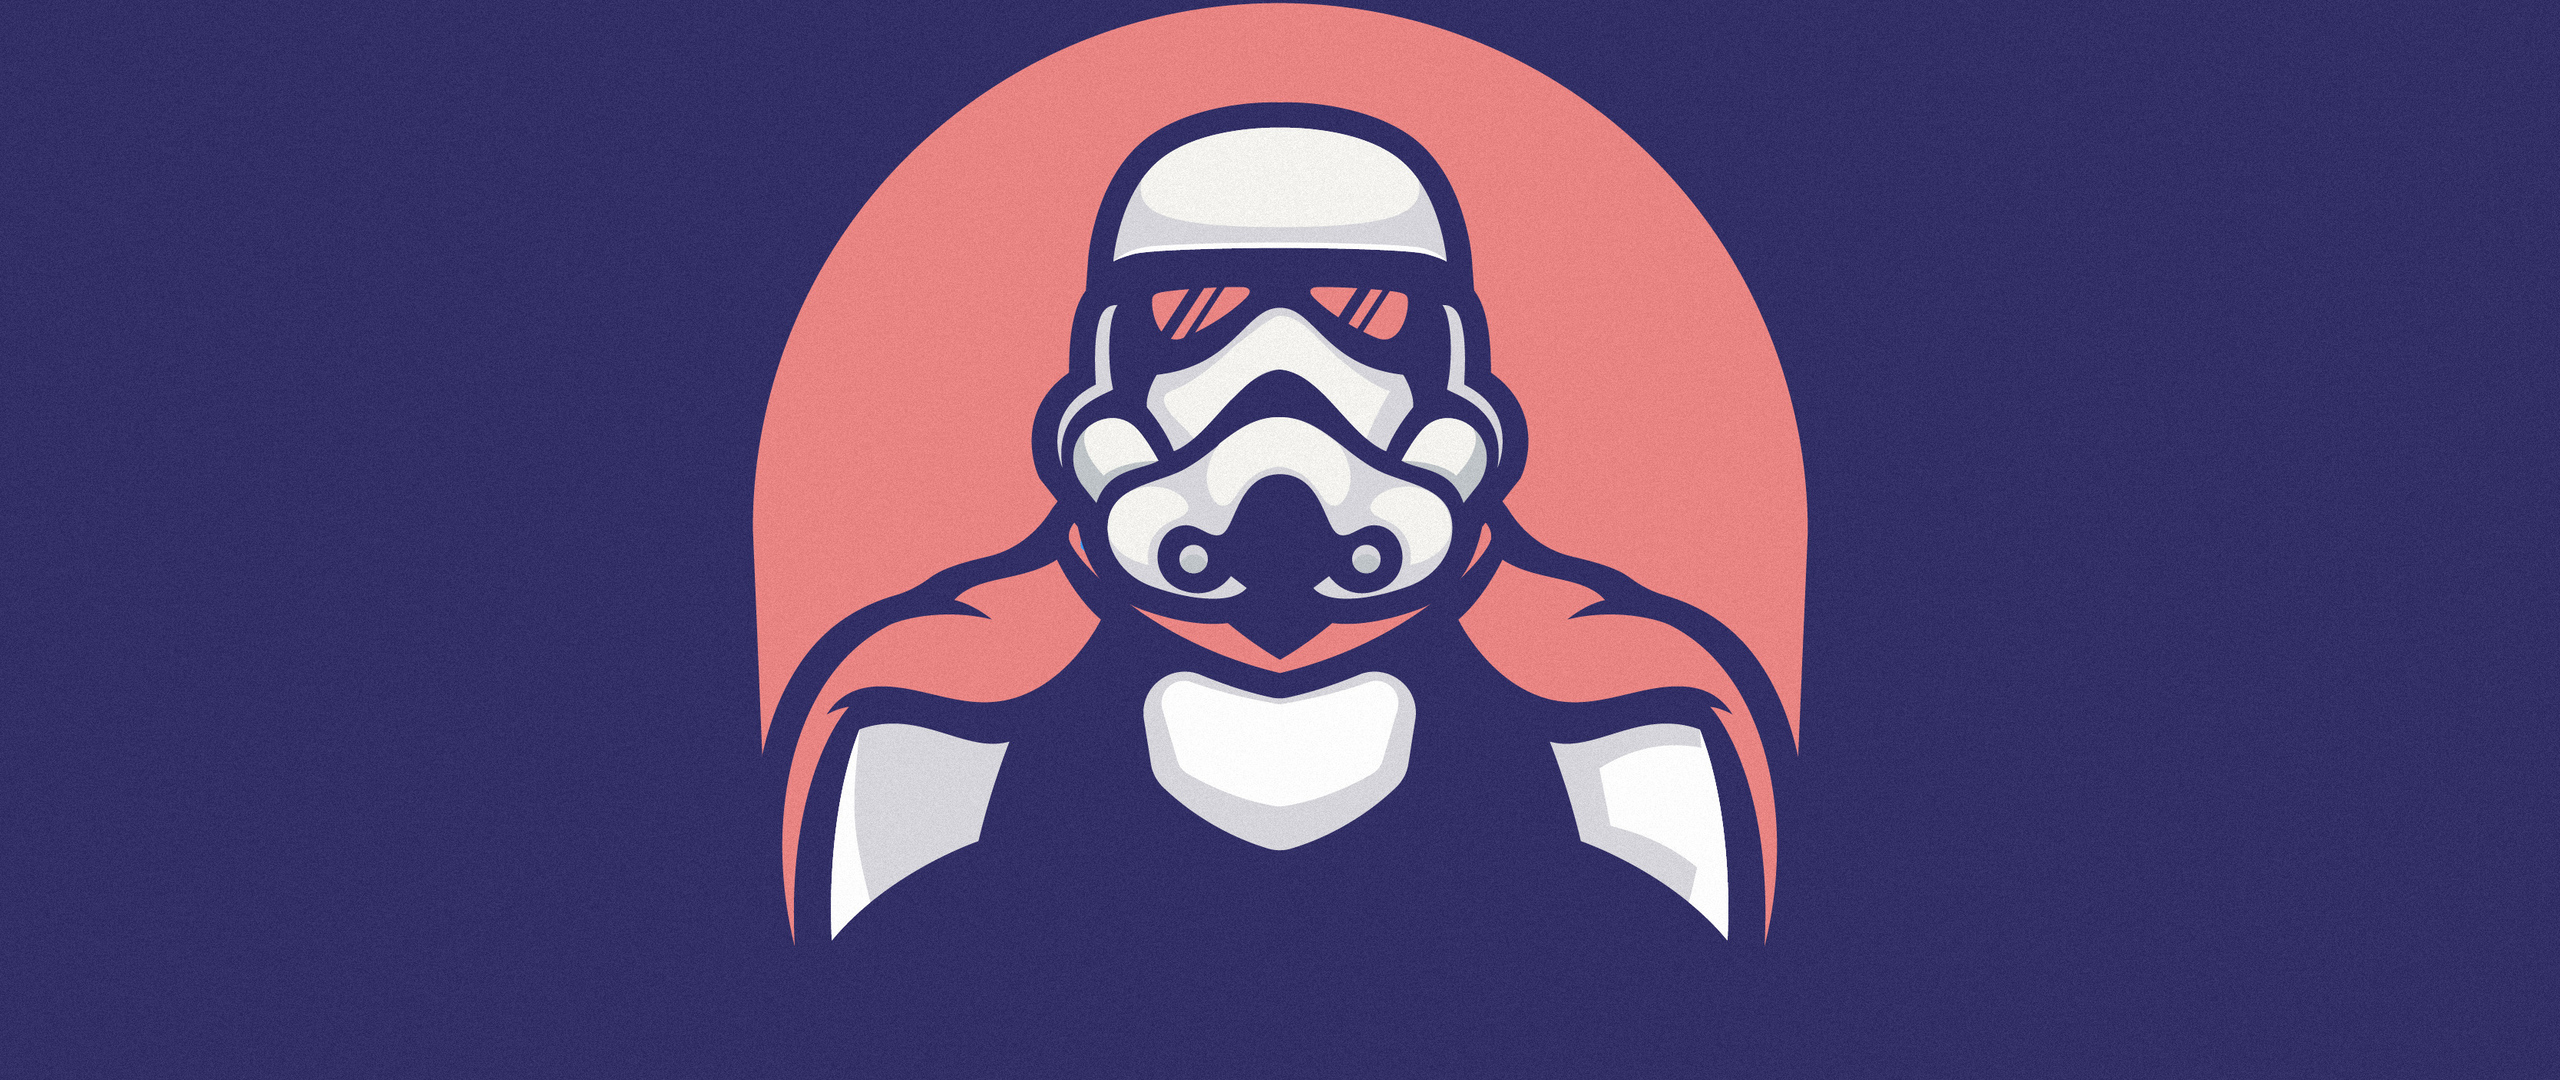 2560x1080 Star Wars Minimalist 4k 2560x1080 Resolution Hd 4k Wallpapers Images Backgrounds Photos And Pictures